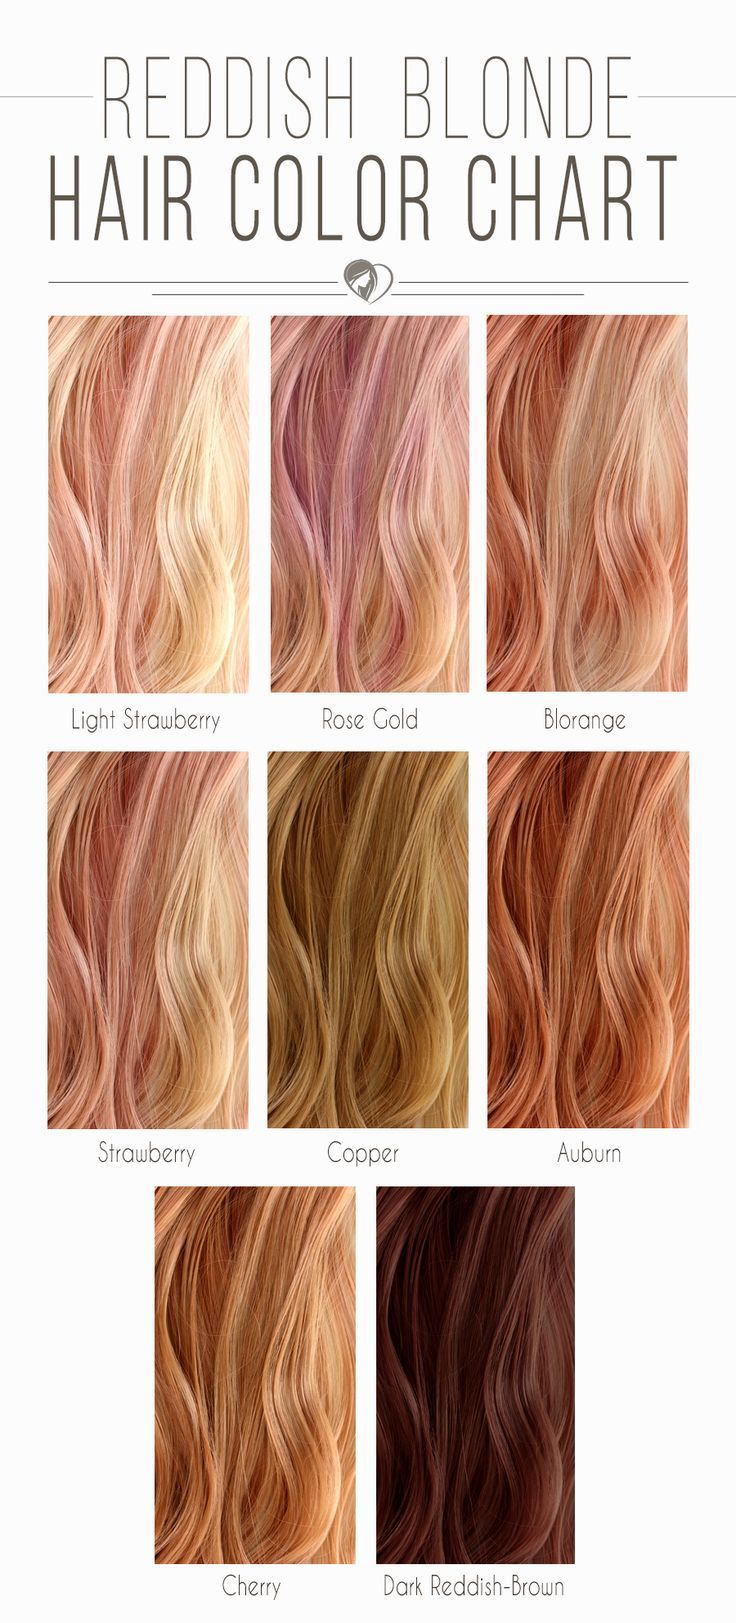 Hair Color 2017 2018 Reddish Blonde Hair Color Chart Blondehair